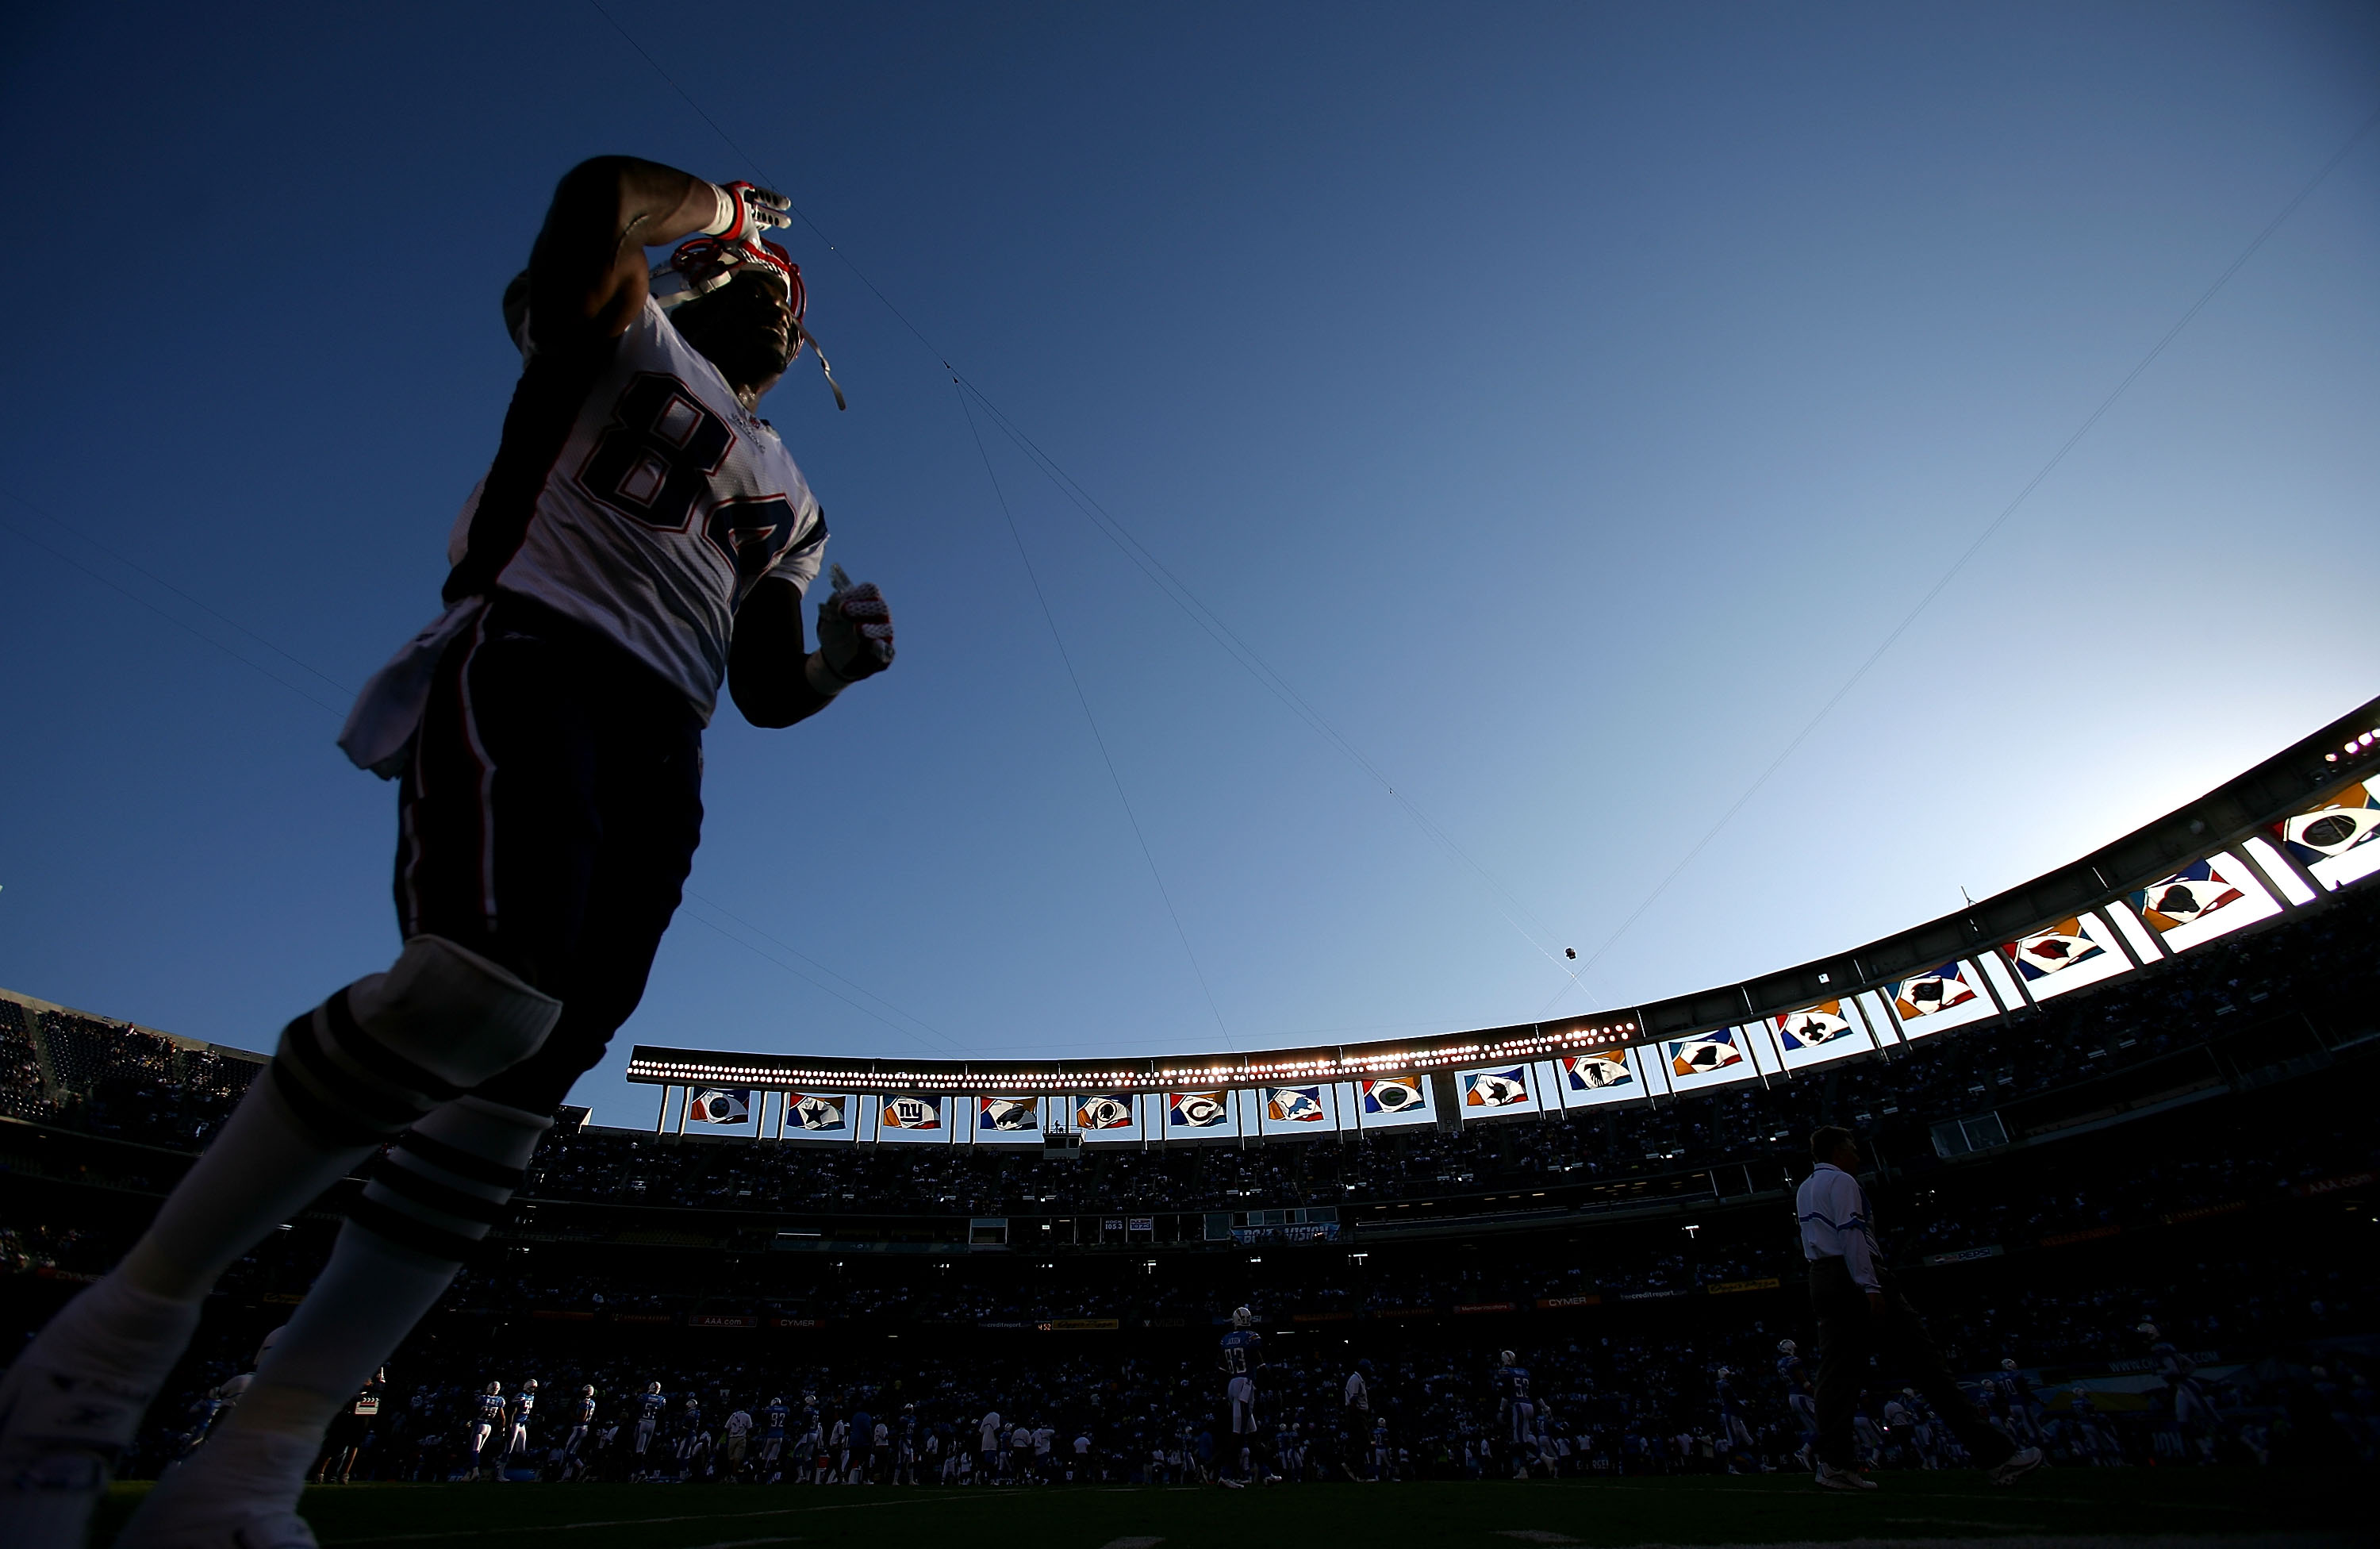 SAN DIEGO - OCTOBER 12: Tight End Benjamin Watson #84 of the New England Patriots walks on the field before the start of their NFL Game against the San Diego Chargers on October 12, 2008 at Qualcomm Stadium in San Diego, California. (Photo by Donald Miralle/Getty Images)